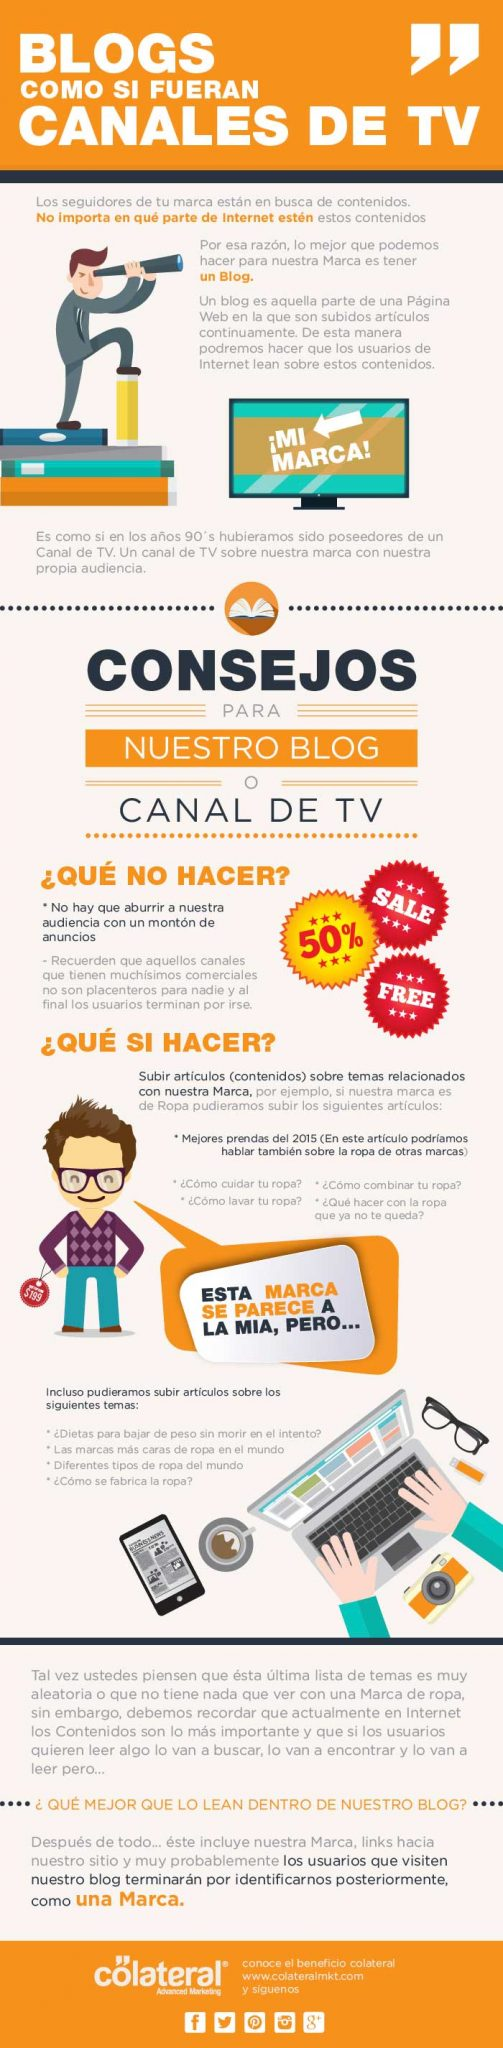 INFOGRAFIA-BLOG-CANAL-TV-01